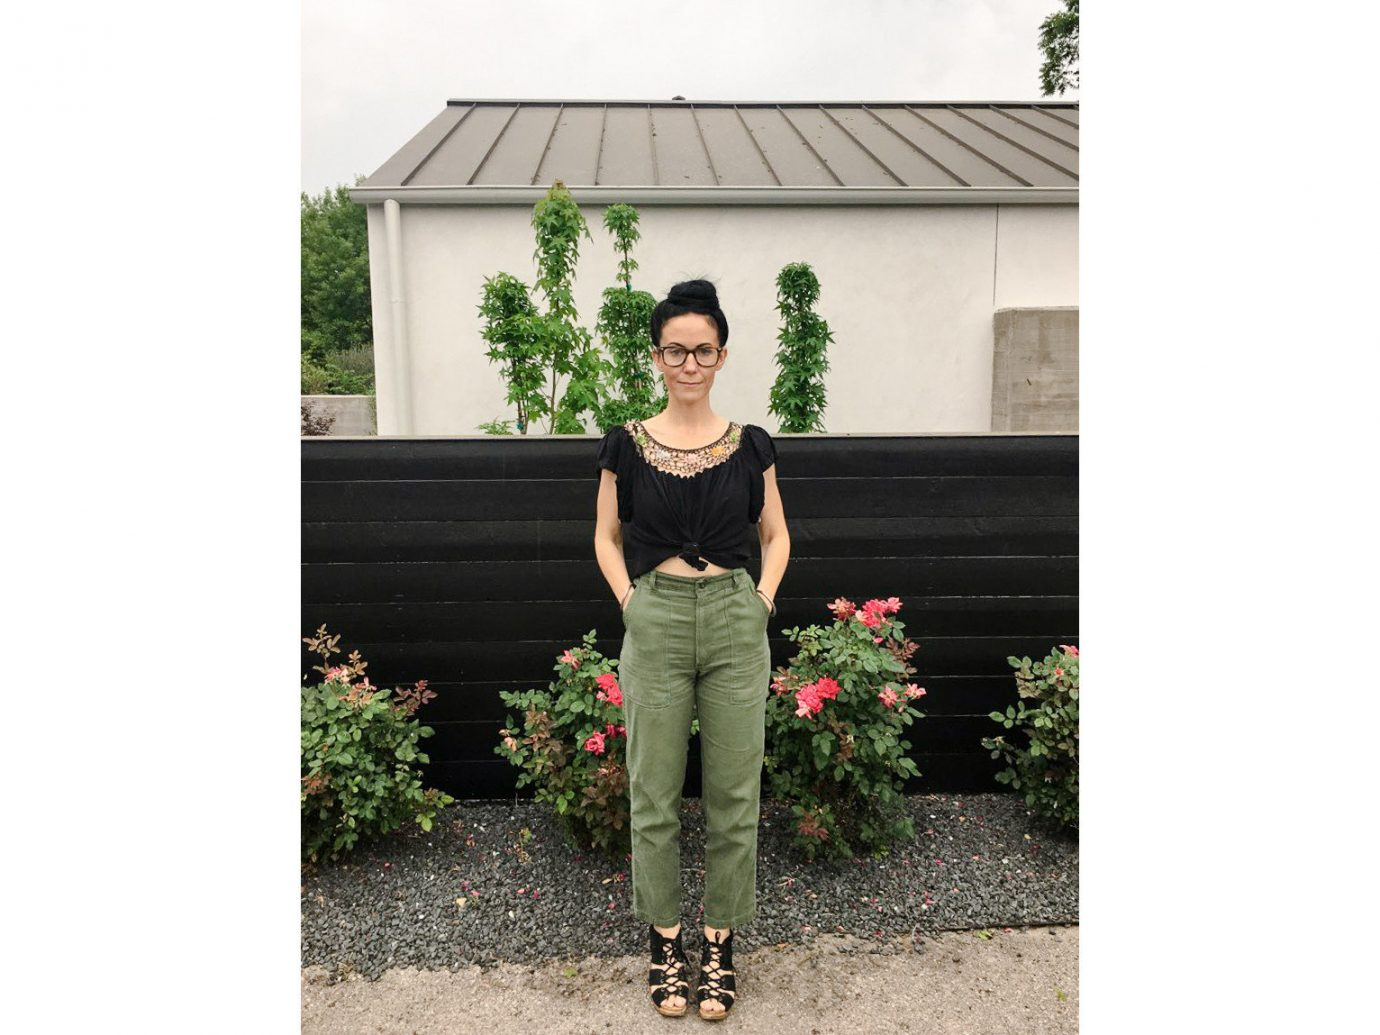 building outdoor green person plant fashion house outerwear tree posing grass flower pattern